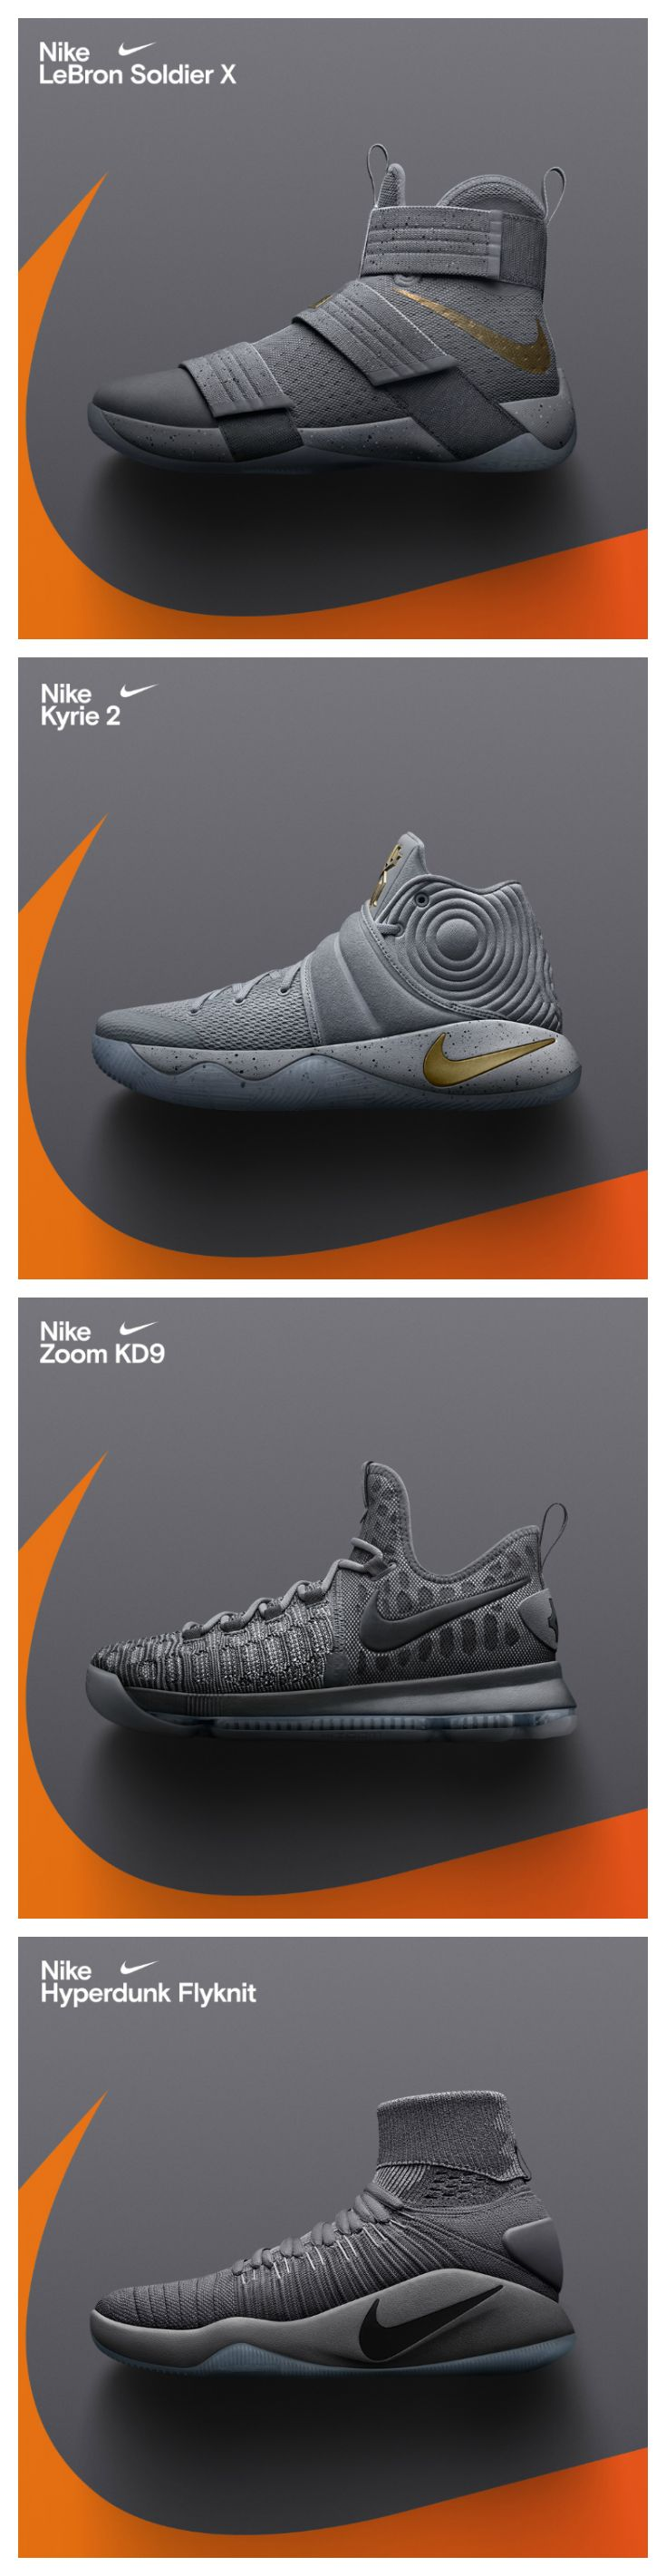 on sale 1f3ae a0712 Nike just dropped grey-on-grey colorways of the KD Kyrie Soldier and  Hyperdunk Available now.